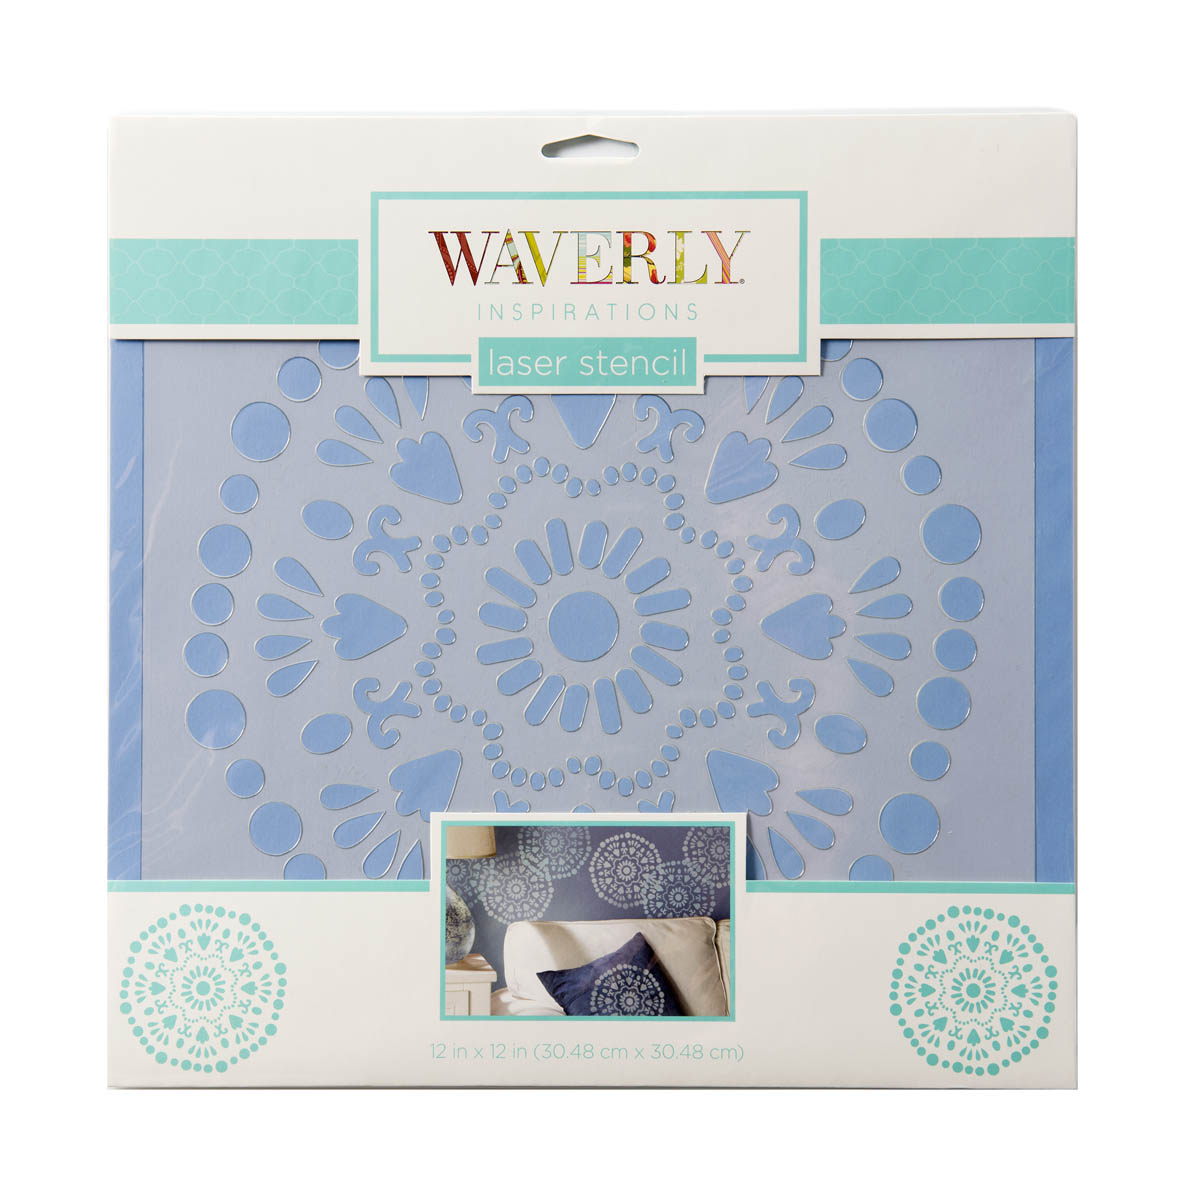 Waverly ® Inspirations Laser Stencils - Décor - Big Wheel, 12